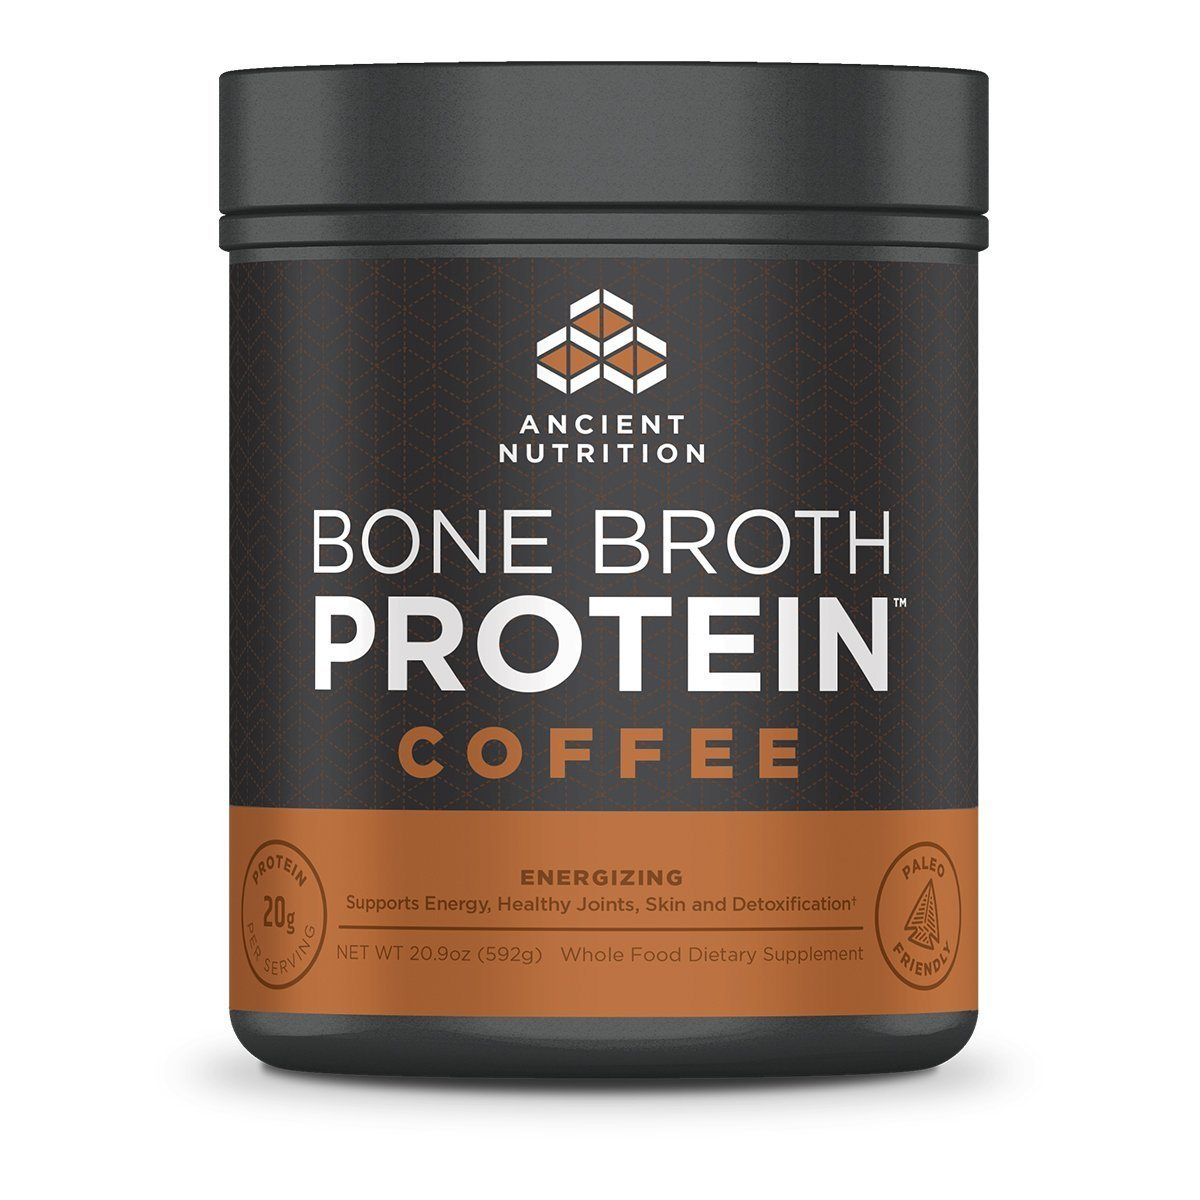 Ancient Nutrition Bone Broth Protein Coffee 20 Servings Protein Ancient Nutrition  (1059256500267)